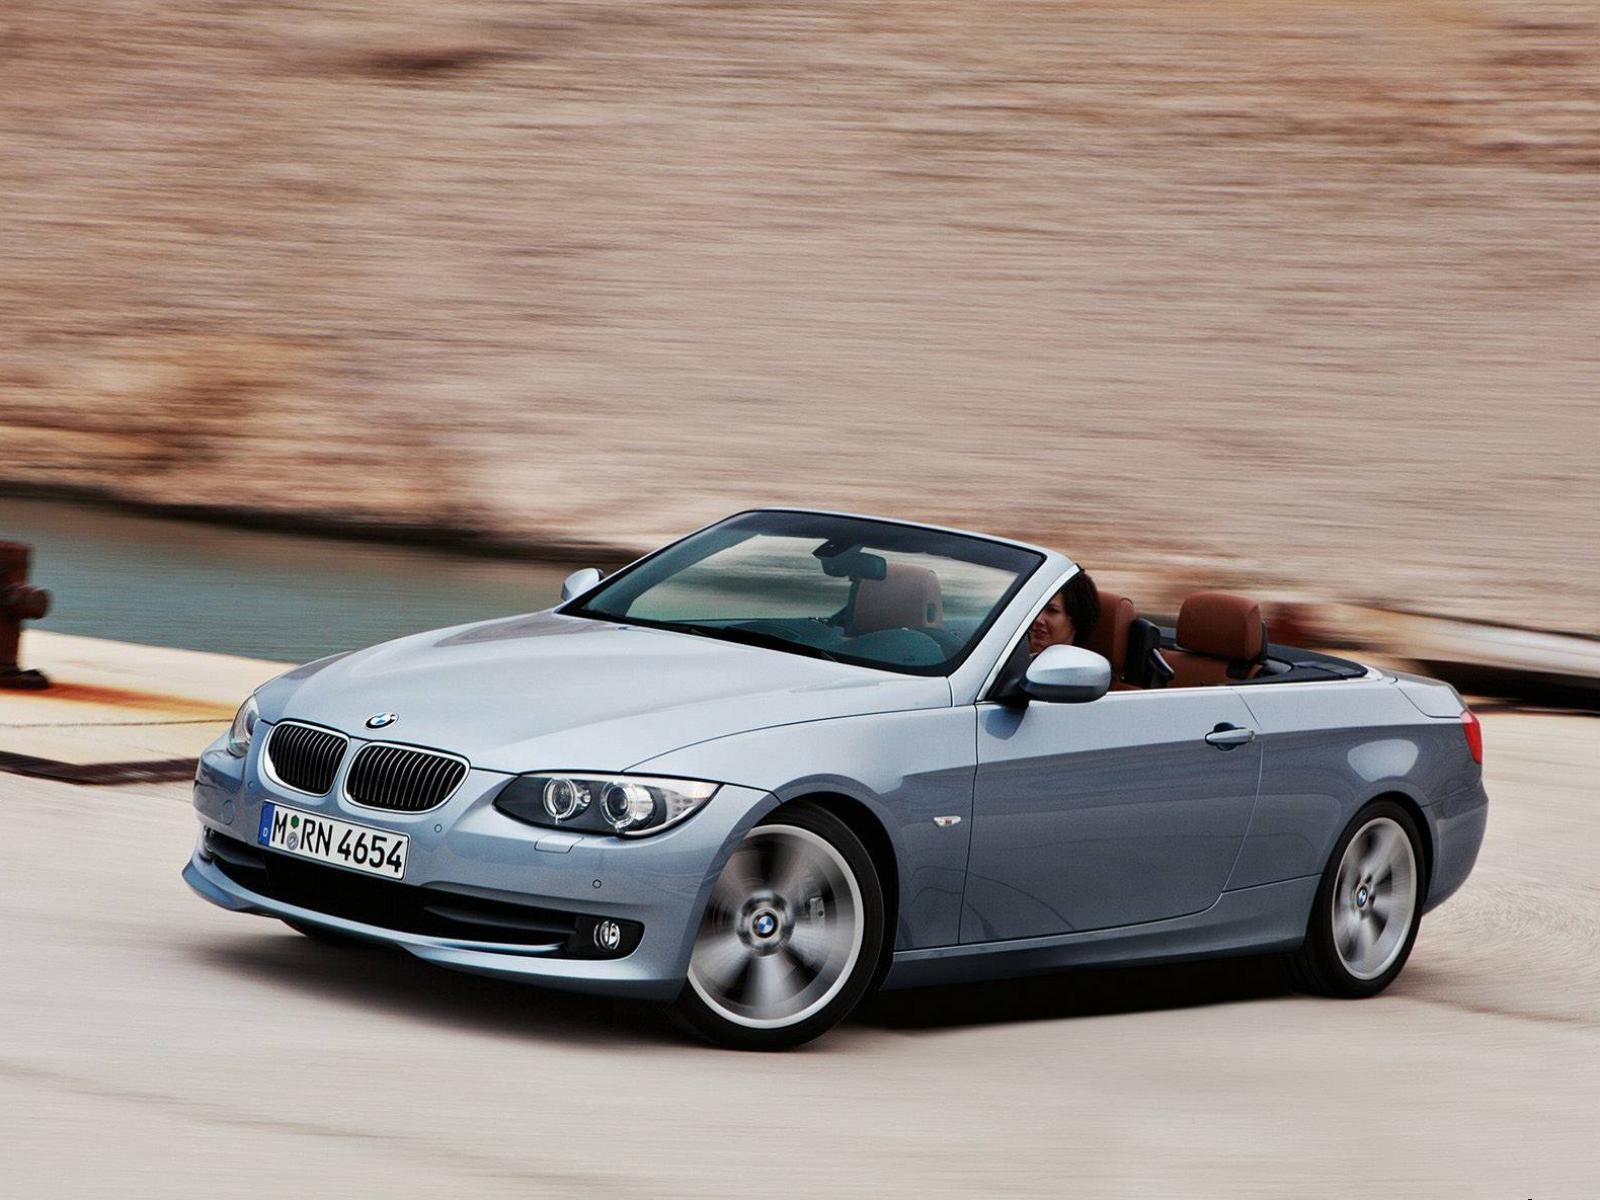 Обои BMW 3 Series Conver tible 1600x1200